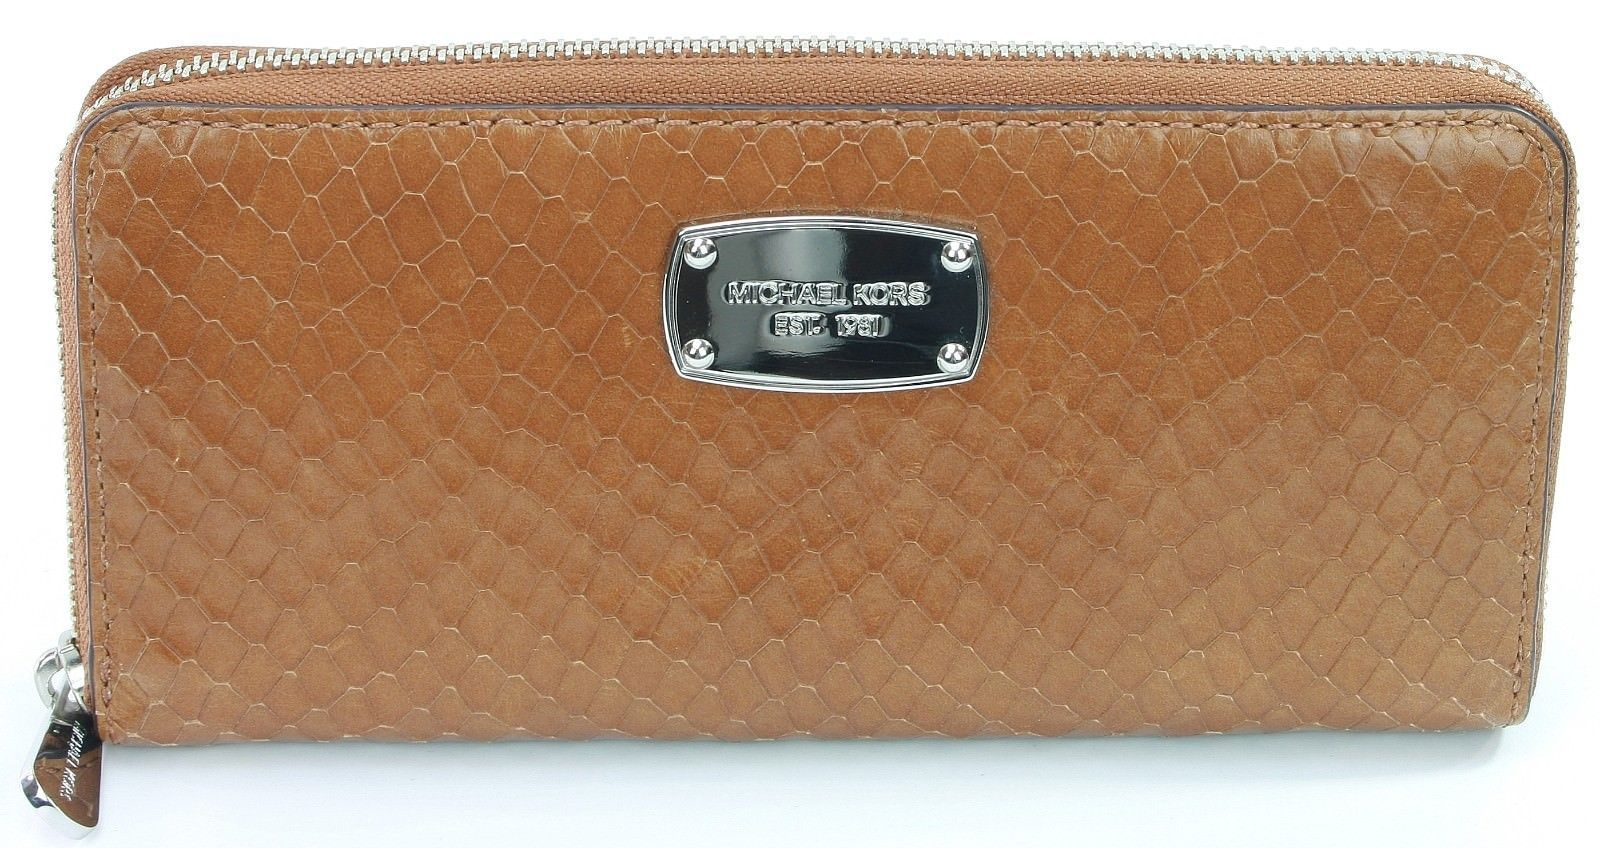 b7bb4f48704a9 MICHAEL KORS Geldbörse braun weich Python and 50 similar items. 57